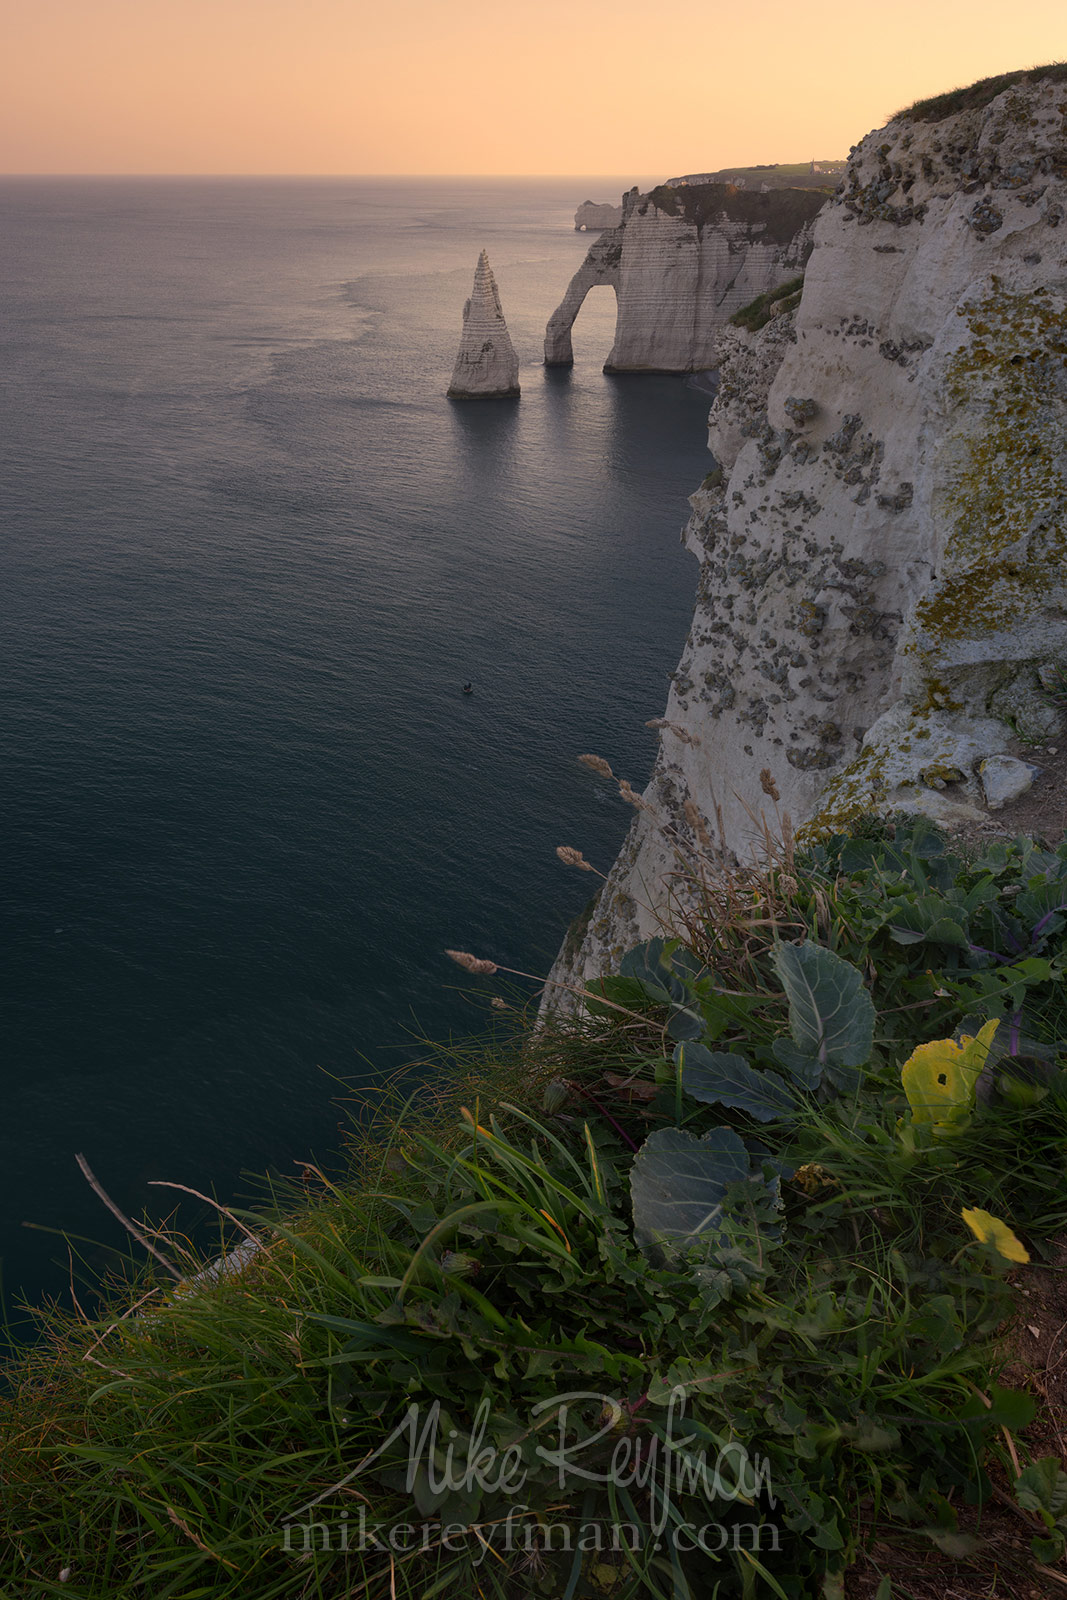 Arch Porte d'Aval and L'Aiguille - the Needle with the Porte d'Amont arch in the distance. Cote d'Albatre – The Alabaster Coast. Ertretat, Normandy, France ET1-MR50A0229 - White Chalk Cliffs and Arches of Alabaster Coast. Etretat, Upper Normandy, France - Mike Reyfman Photography